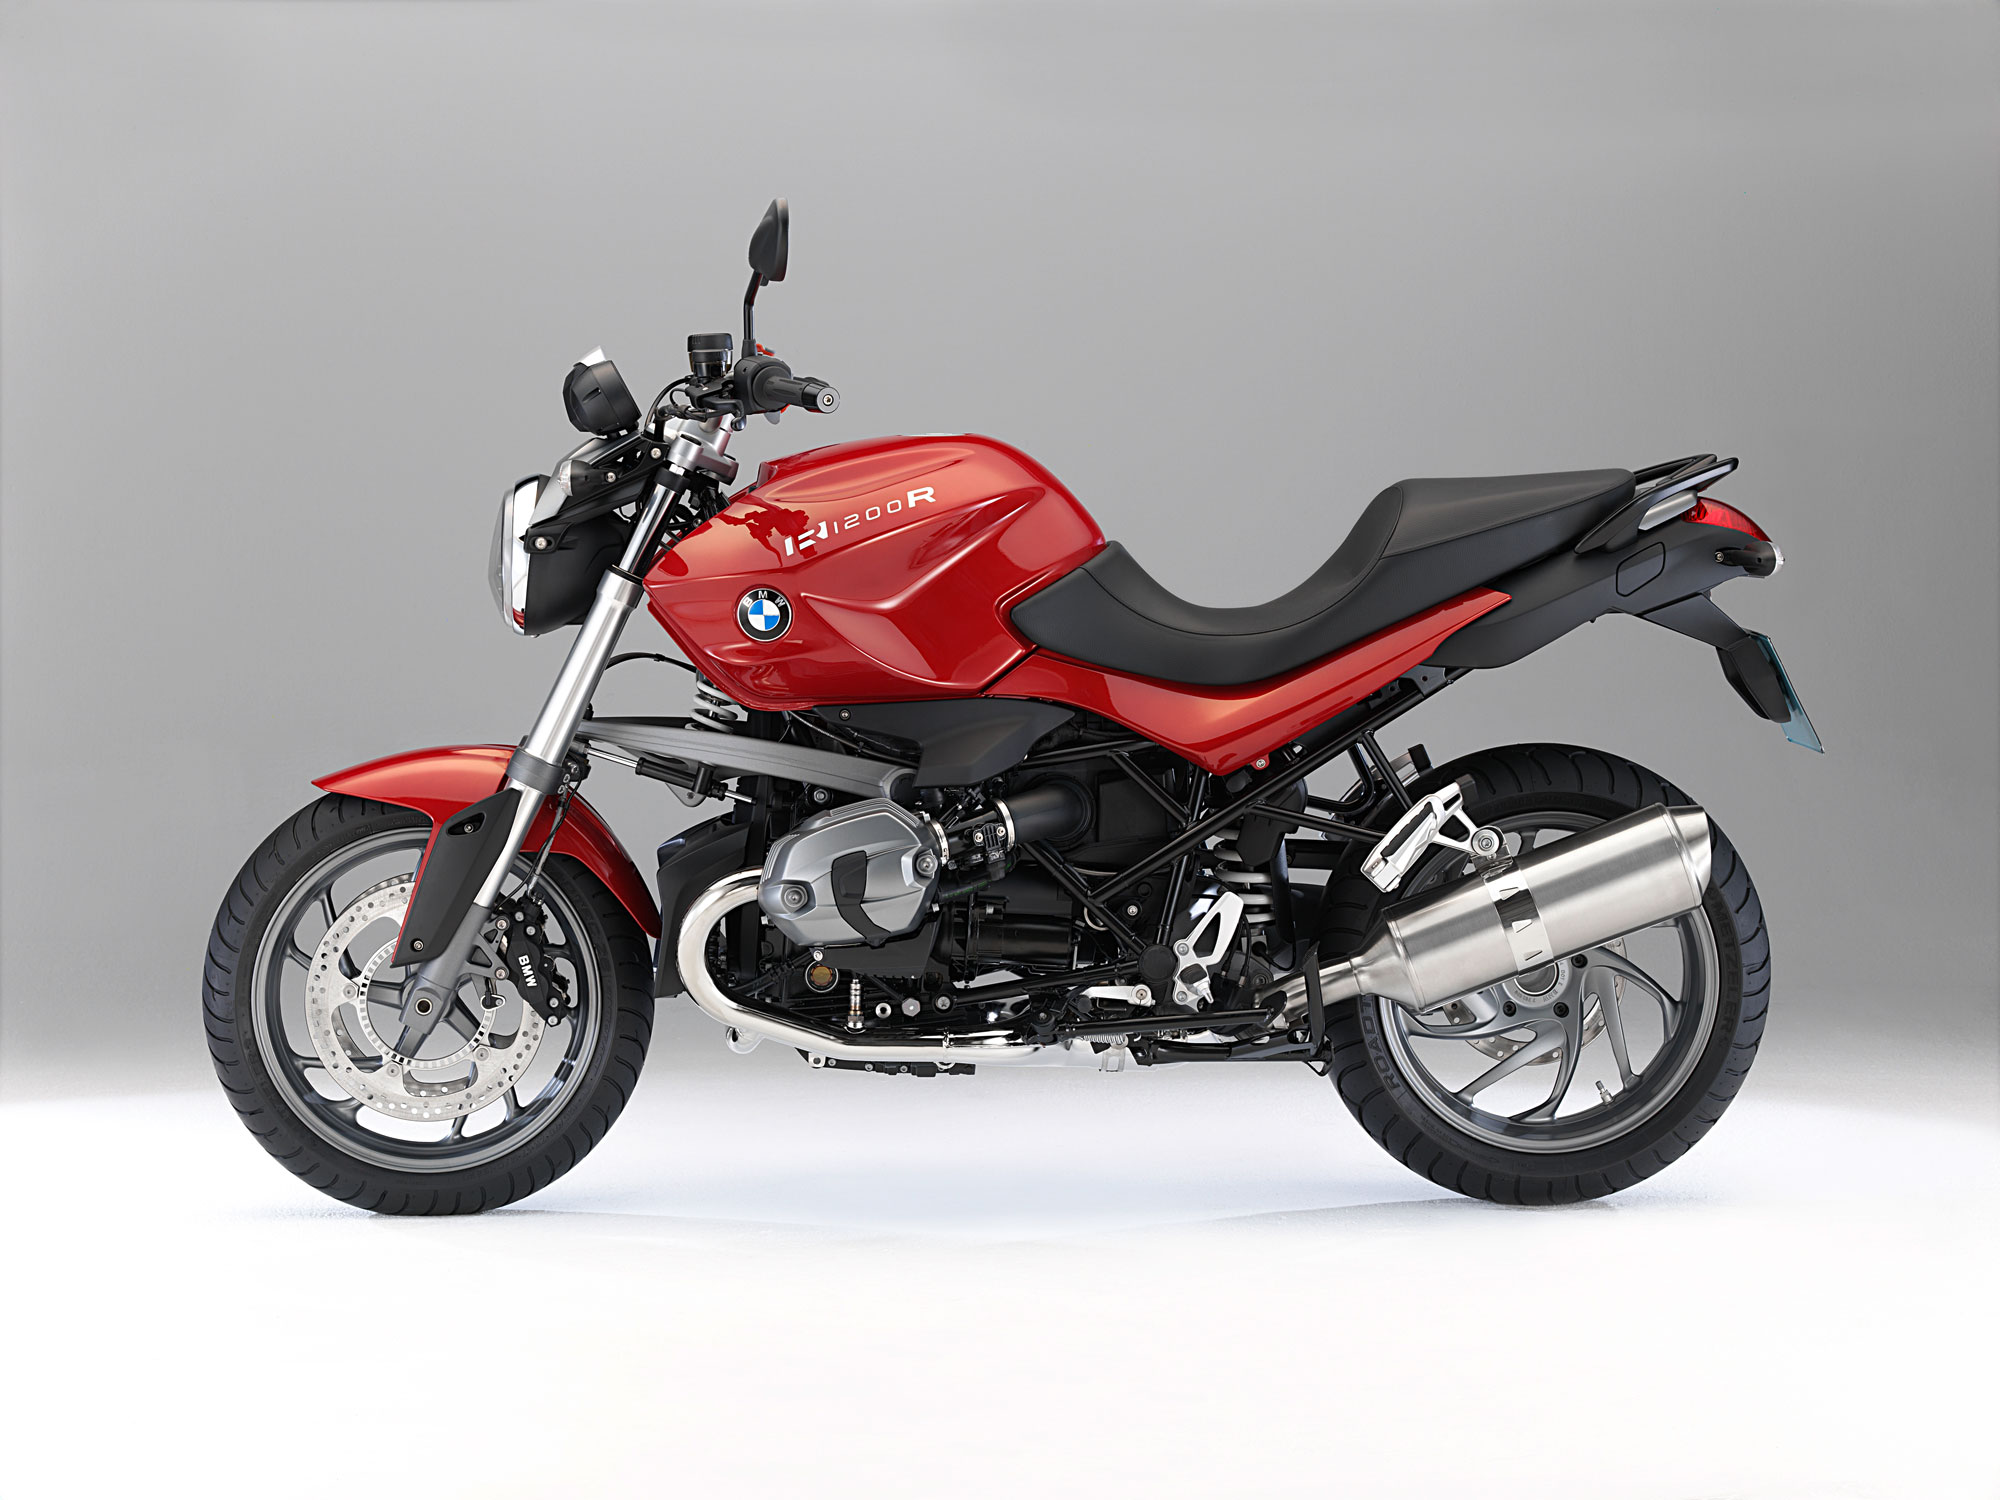 the new bmw r 1200 r the new bmw r 1200 r classic the. Black Bedroom Furniture Sets. Home Design Ideas